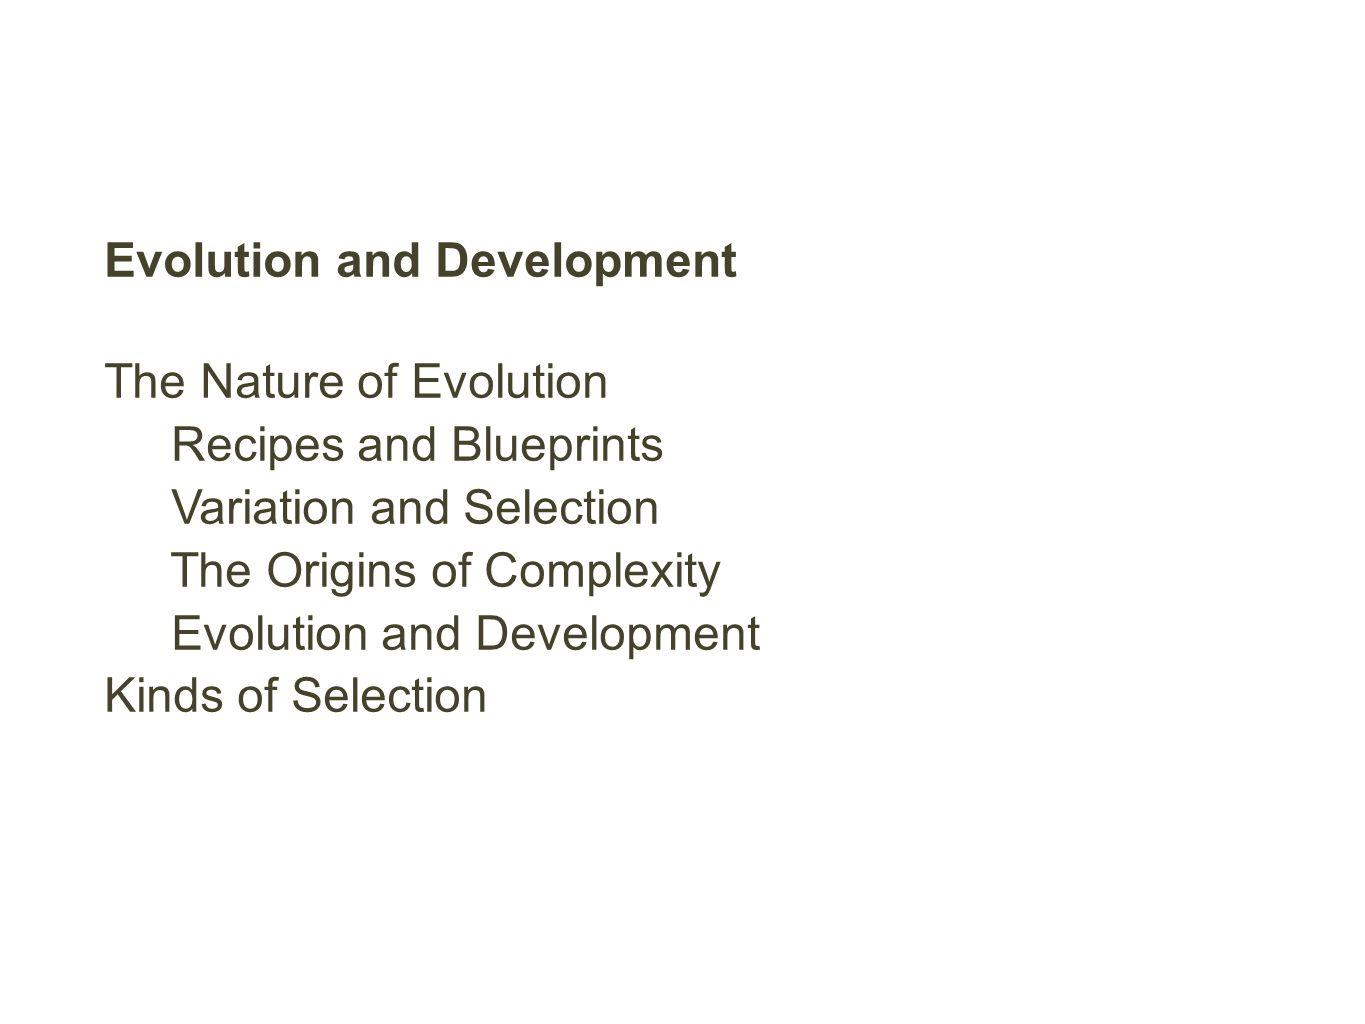 Evolution and Development The Nature of Evolution Recipes and Blueprints Variation and Selection The Origins of Complexity Evolution and Development K